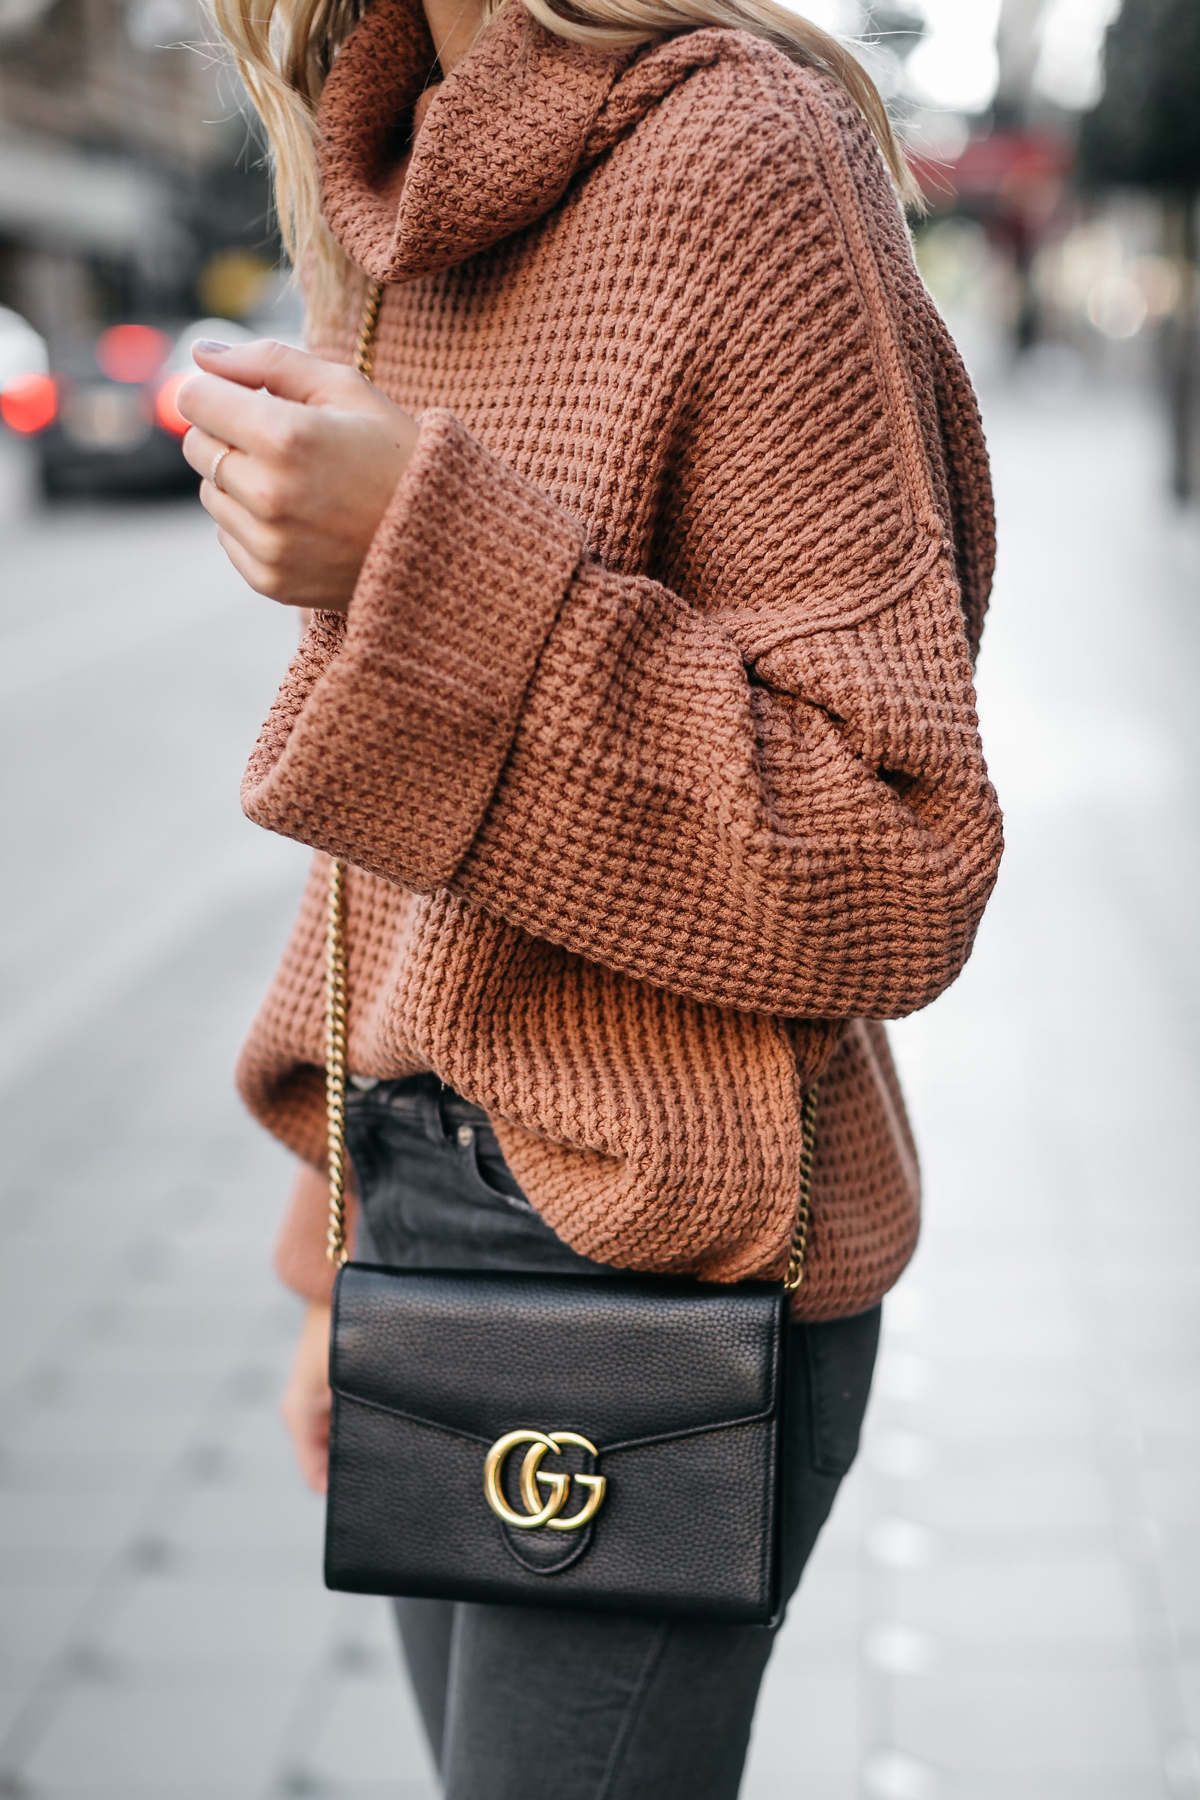 Fashion Jackson Oversized Sweater Free People Park City Pullover Tan Sweater Gucci Marmont Handbag 1